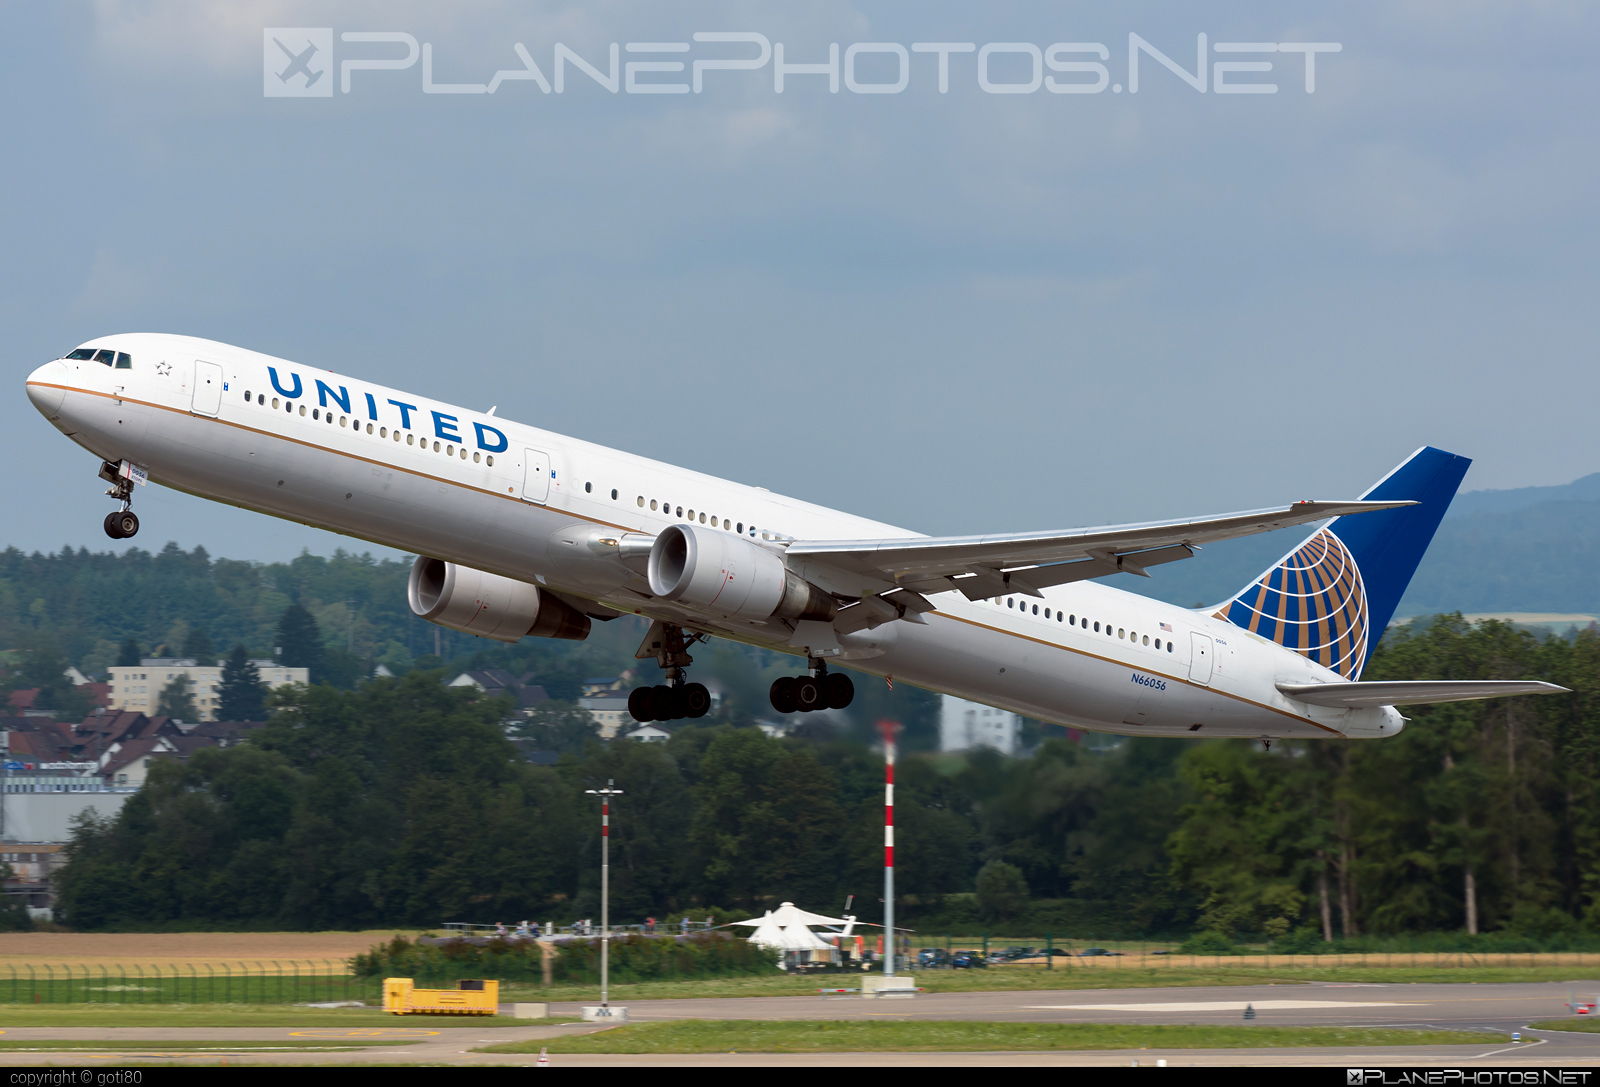 Boeing 767-400ER - N66056 operated by United Airlines #b767 #b767er #boeing #boeing767 #unitedairlines